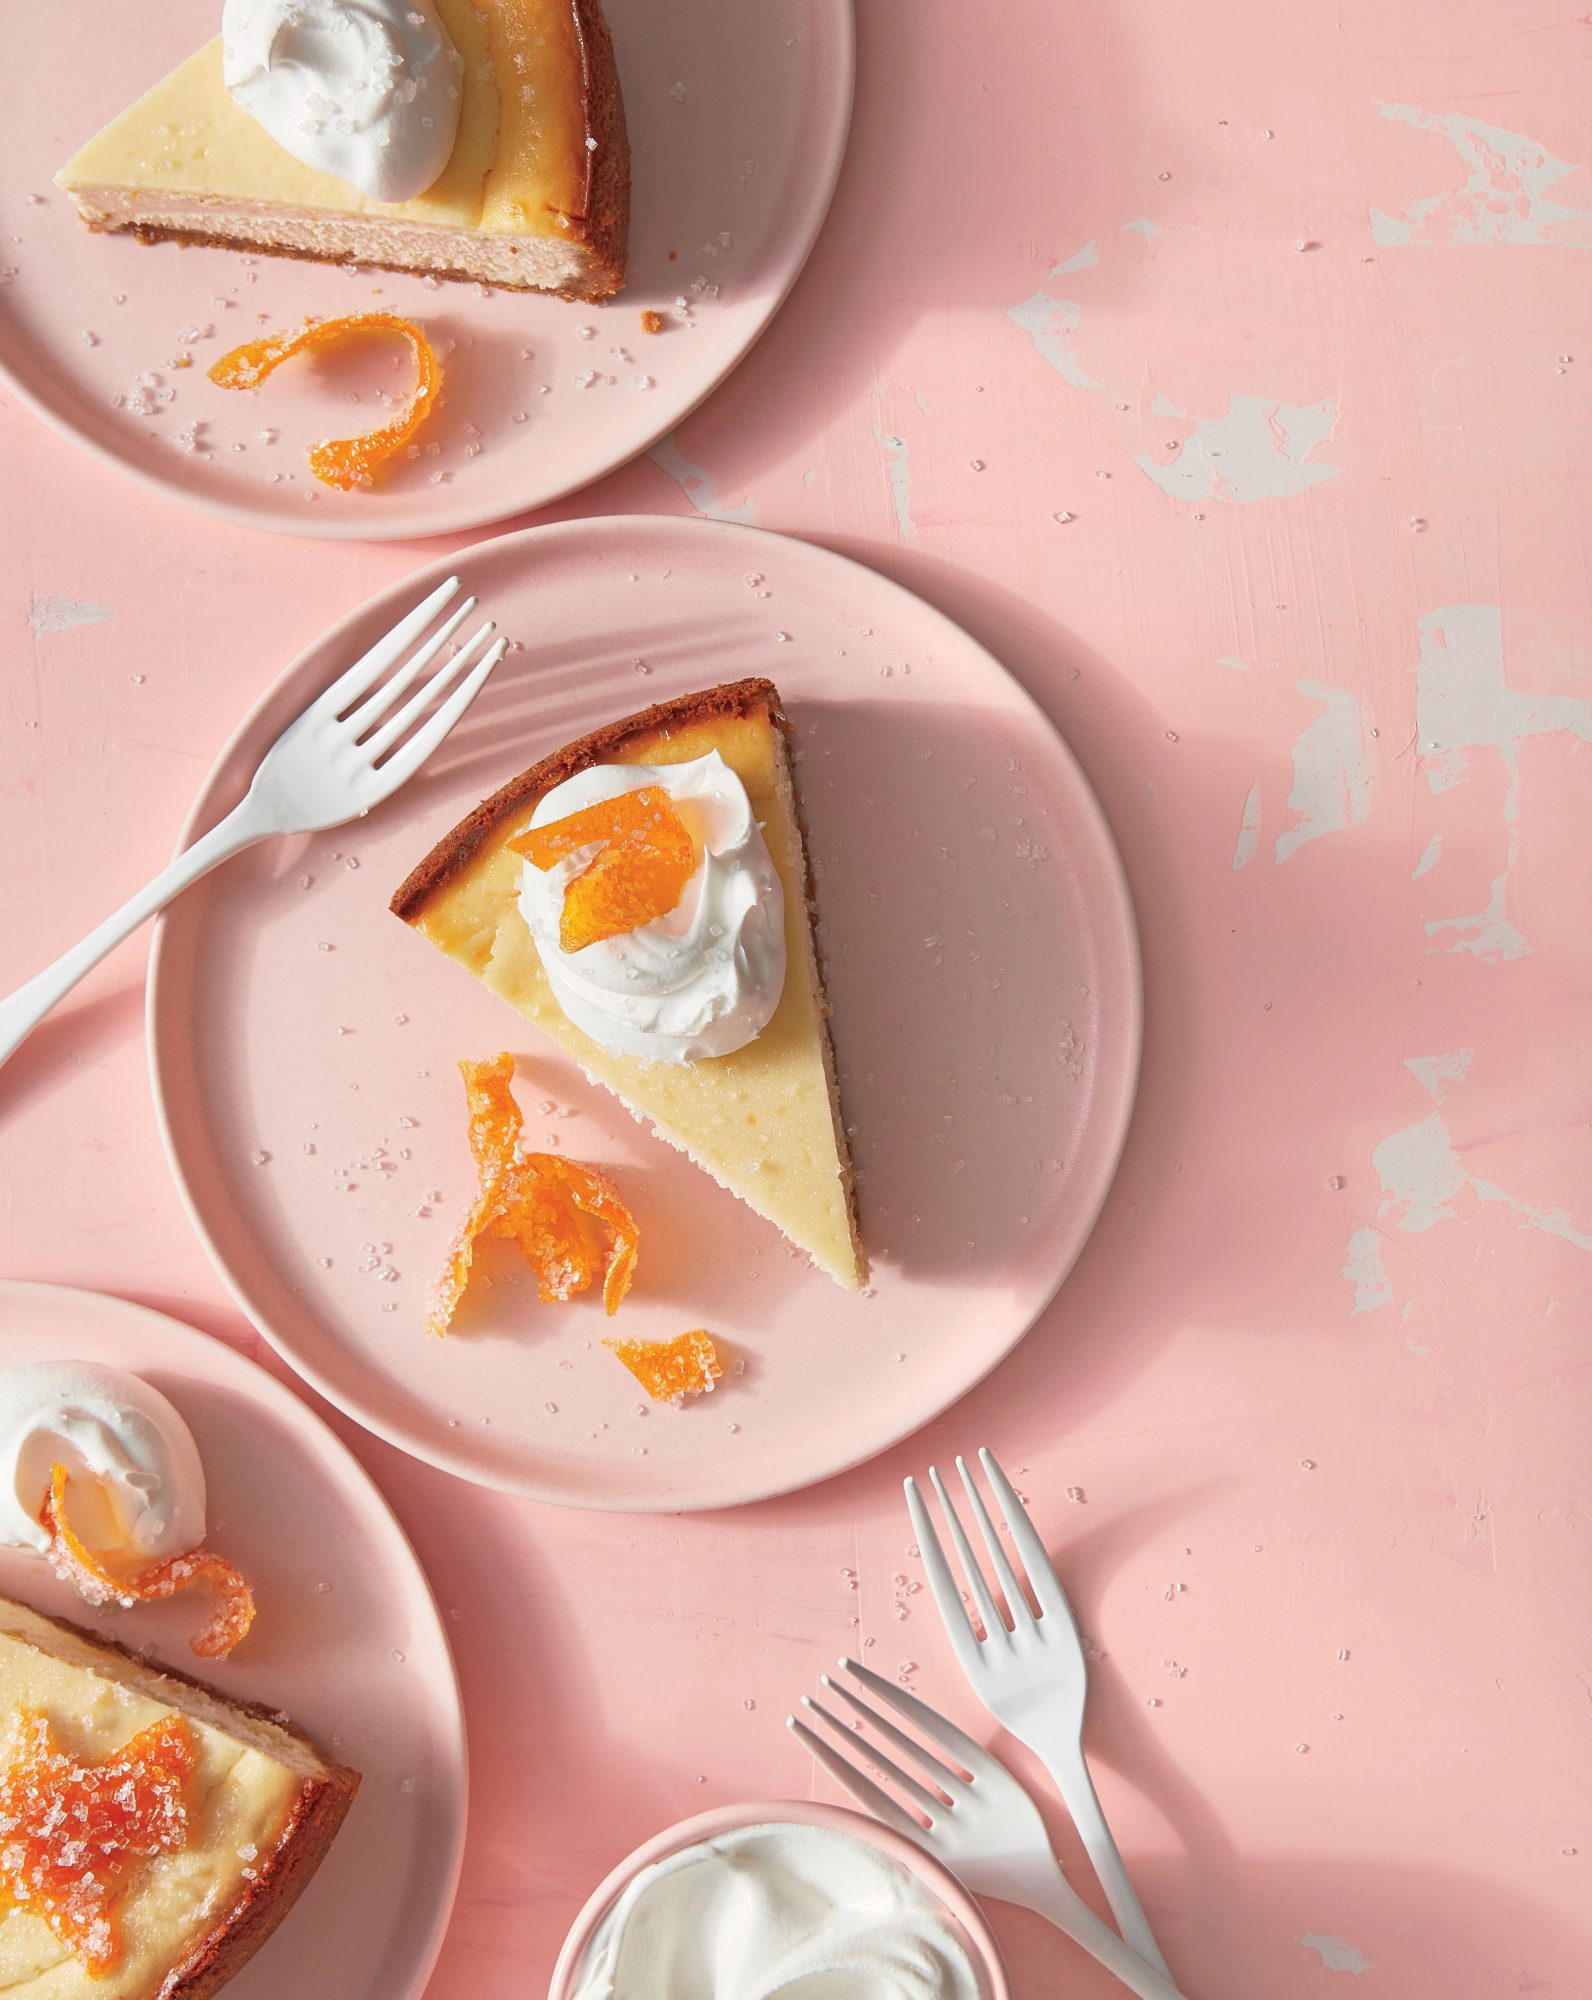 Gingered-Grapefruit Cheesecake image